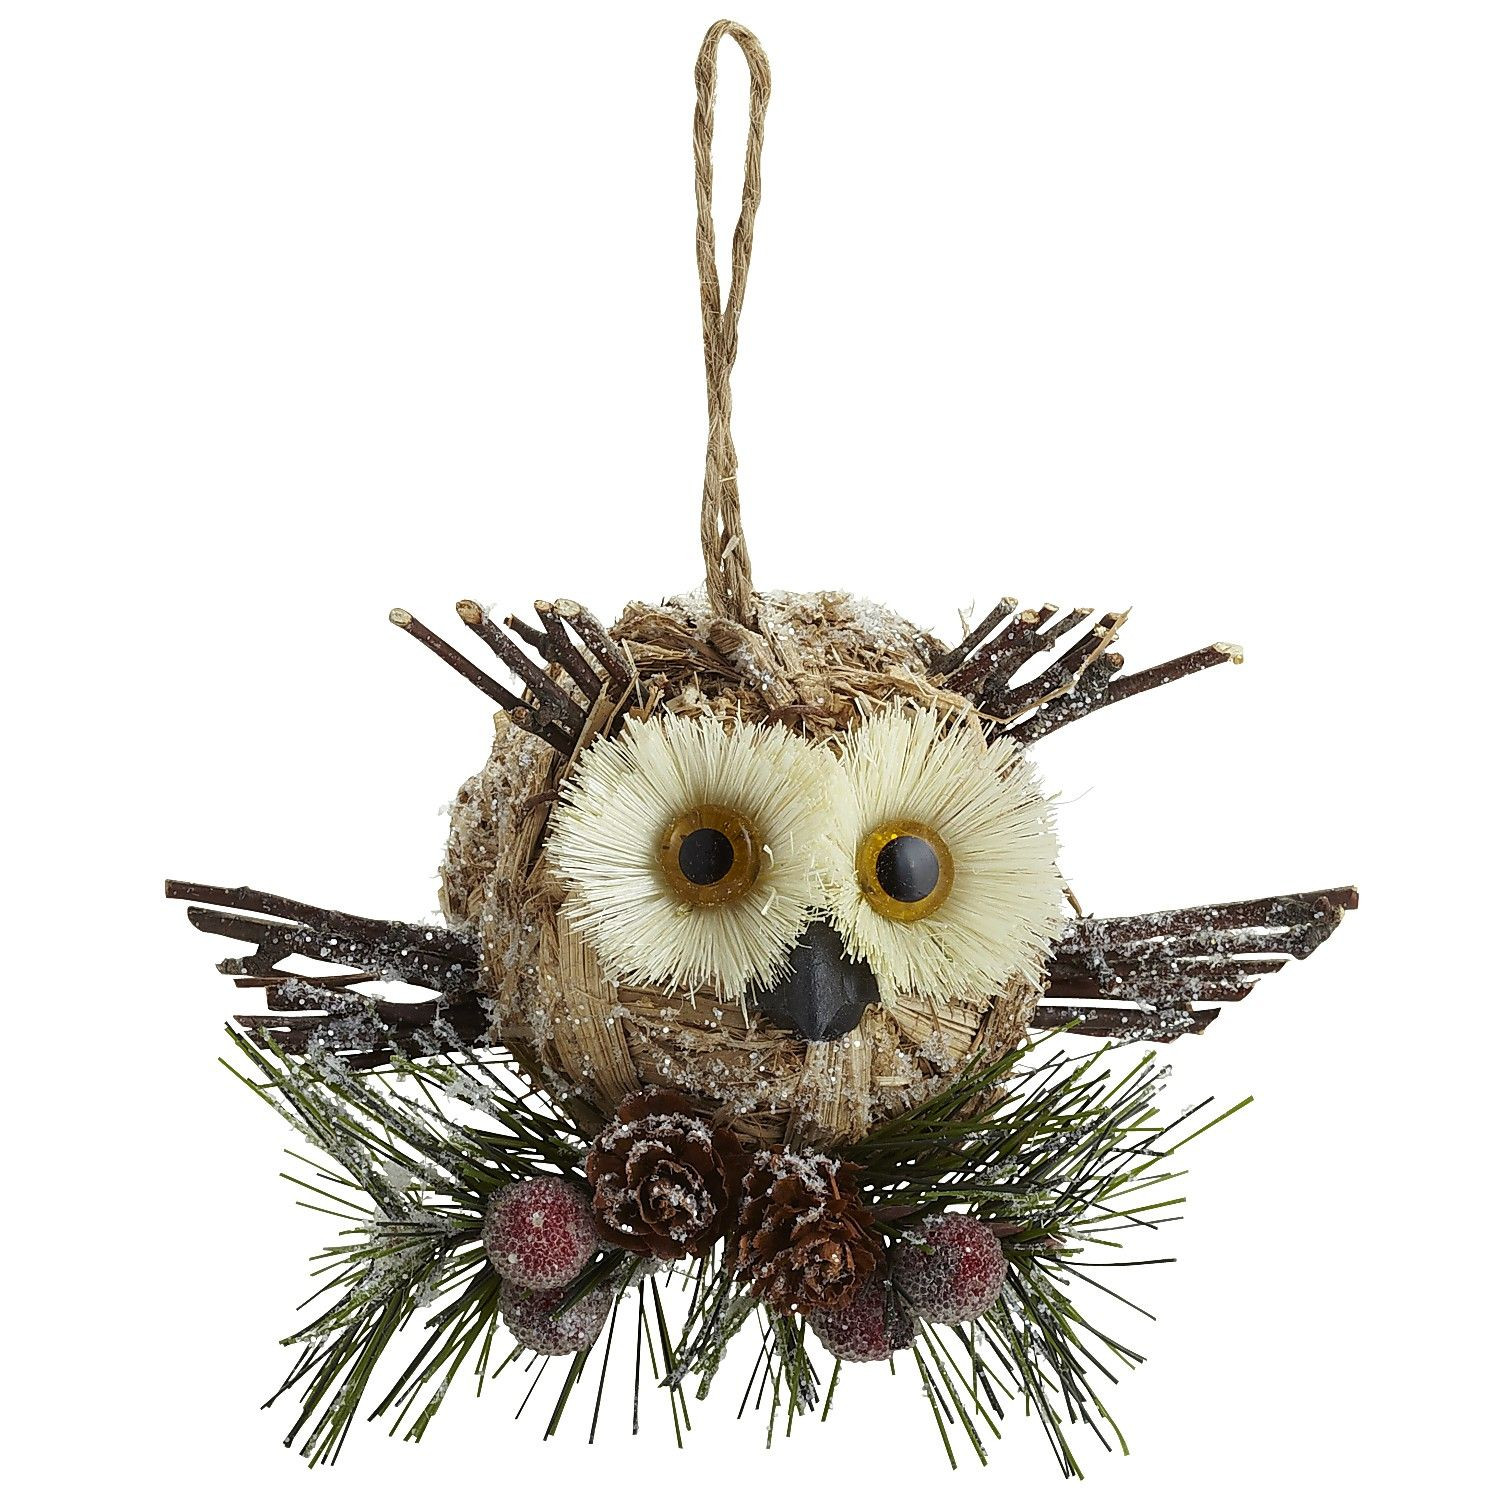 Owl Christmas Ornaments & s